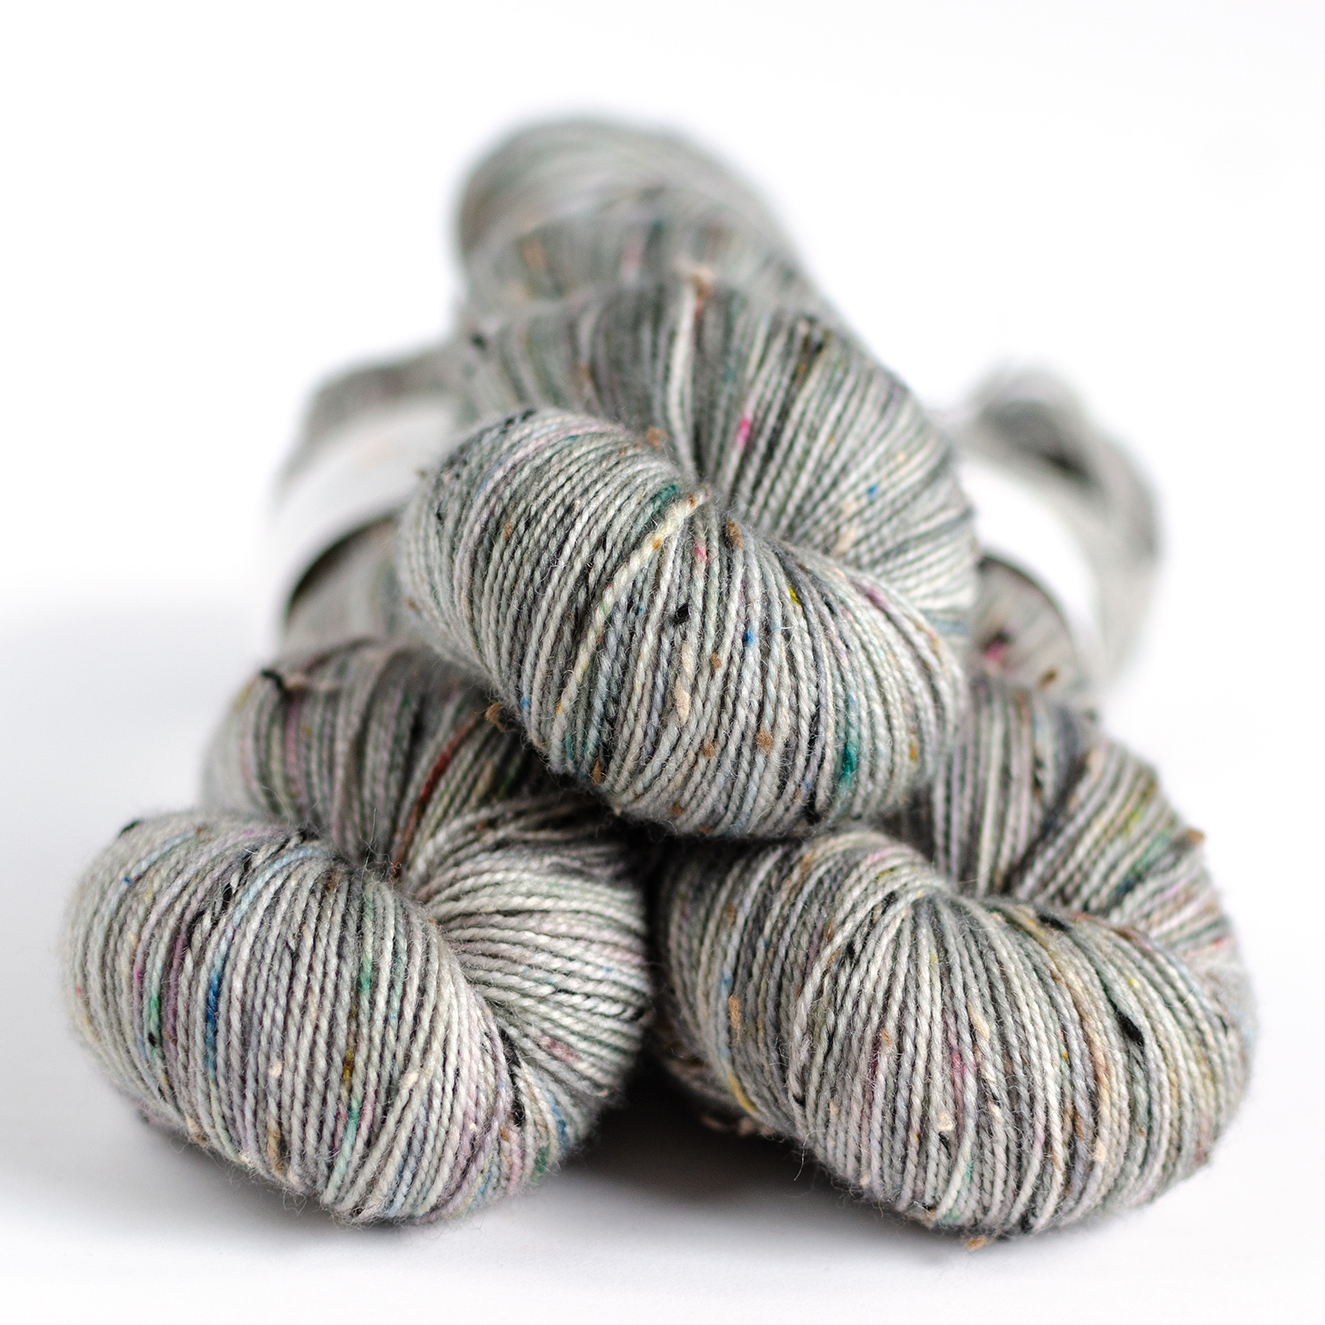 BFL Tweed - $25  85% British BFL, 15% NEP (nylon)  2 plies  435 yards / 398 meters  100 grams  Fingering Weight  US 1-5 / 2.25-3.75mm  Hand wash / Dry flat  This highly textural base has neutral colored tweedy slubs spun into the two plies.